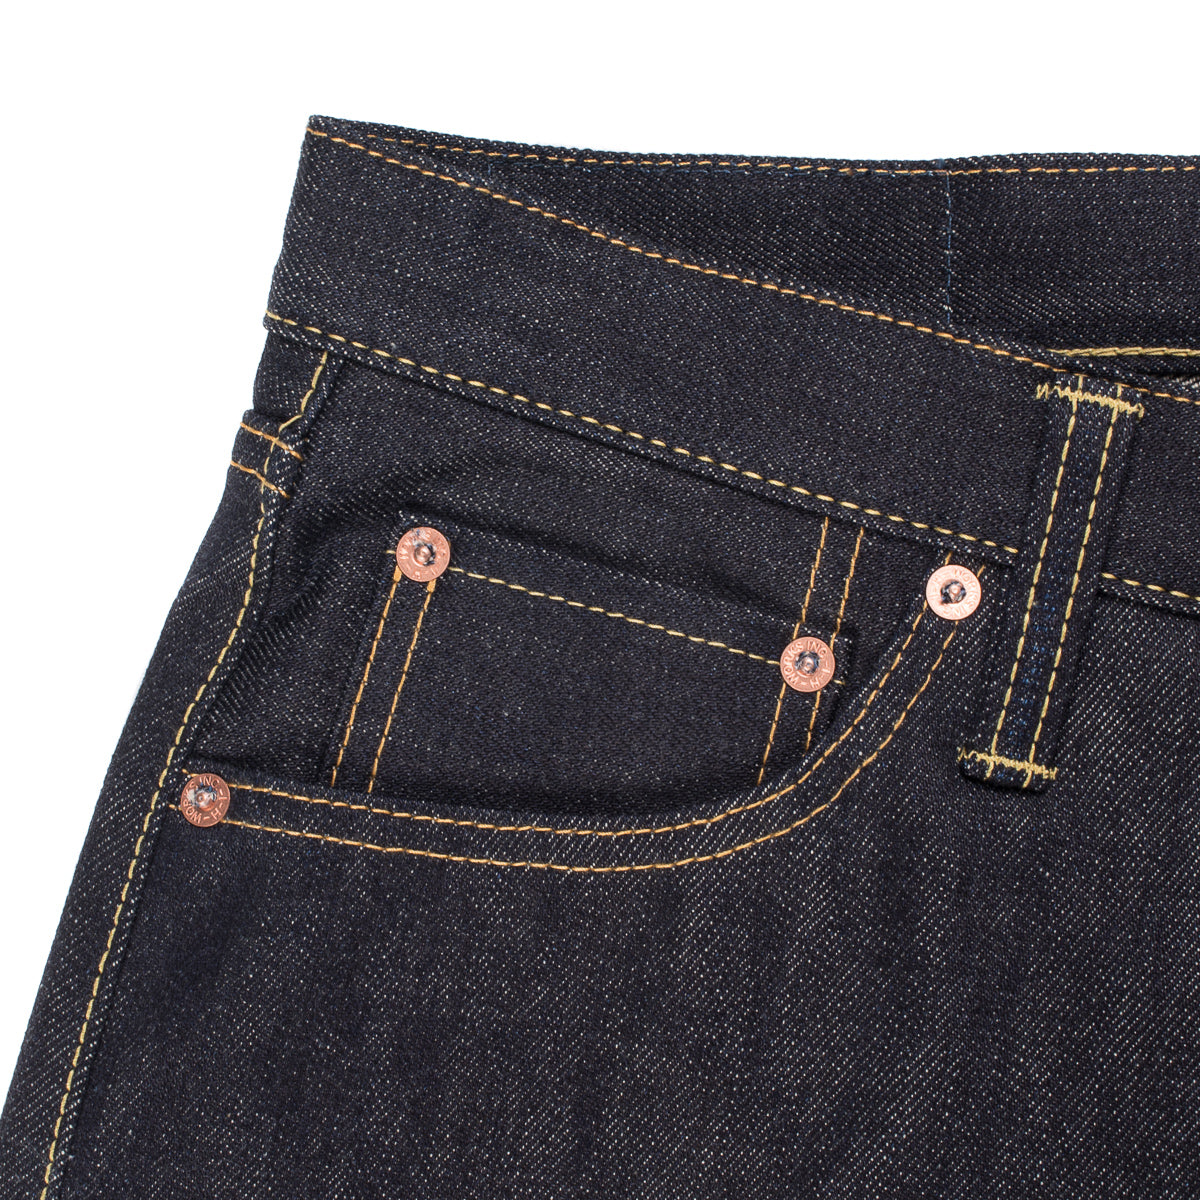 IH-777S-142 - 14oz Selvedge Denim Slim Tapered Jeans - Indigo